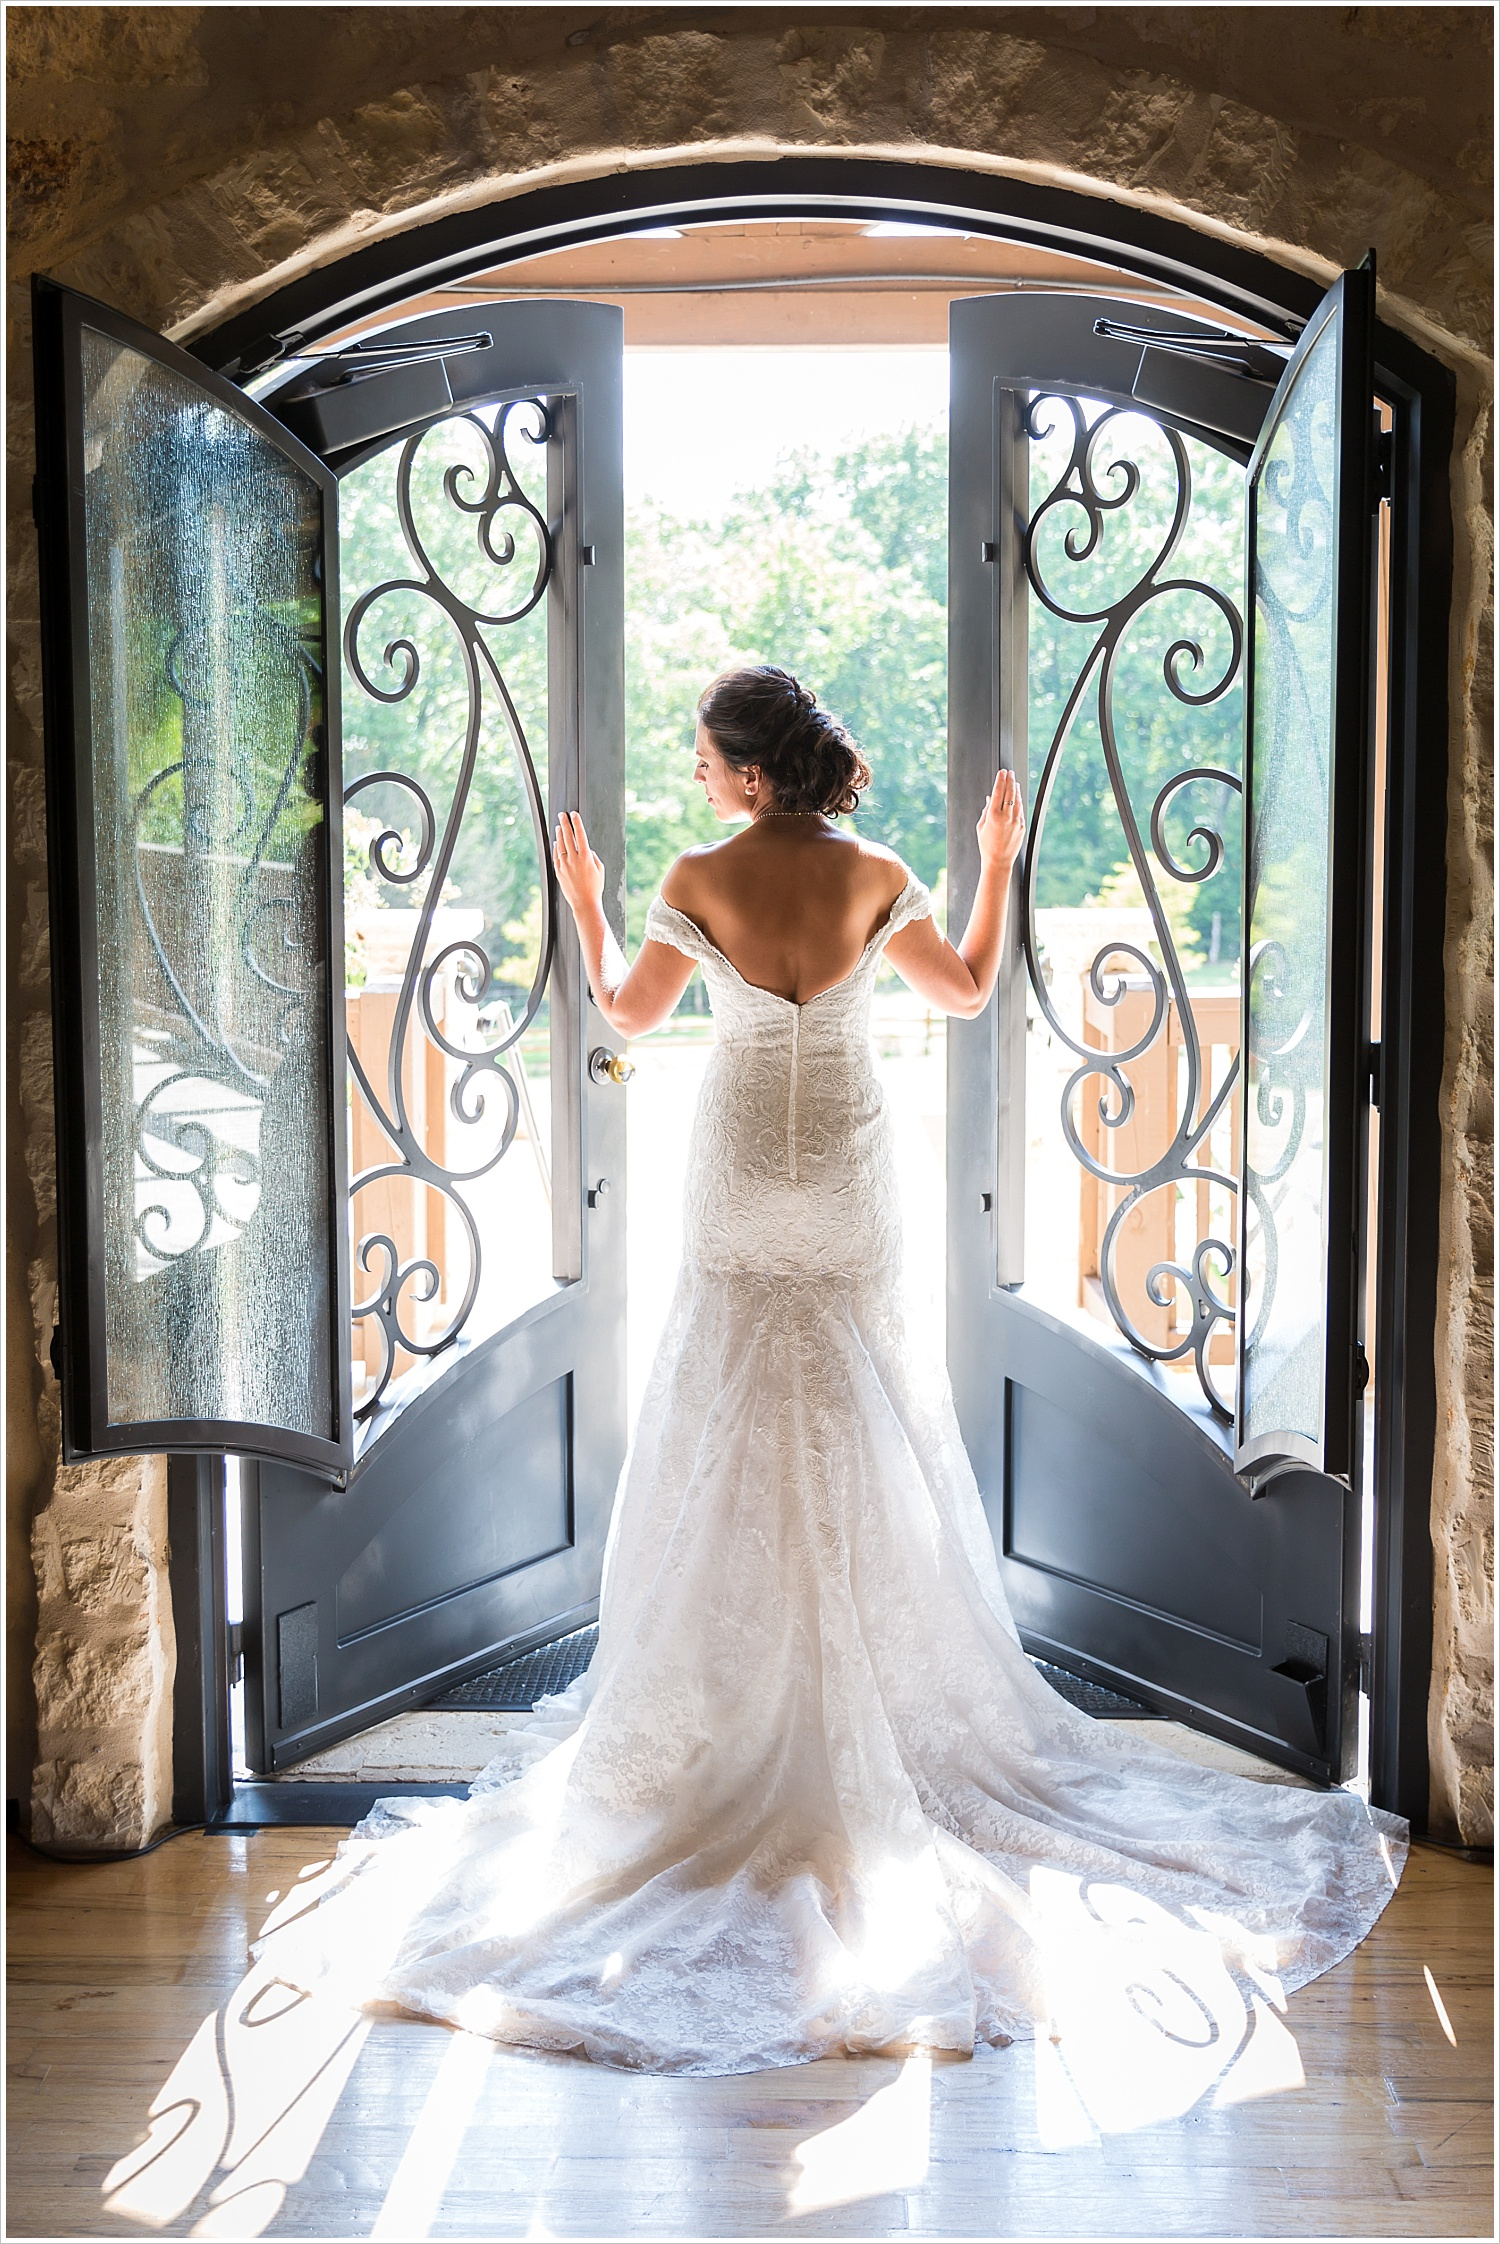 Bride poses by arched doorway, summer blush and navy wedding at Stone Hall at The Springs in McKinney, Texas, Jason & Melaina Photography, www.jasonandmelaina.com